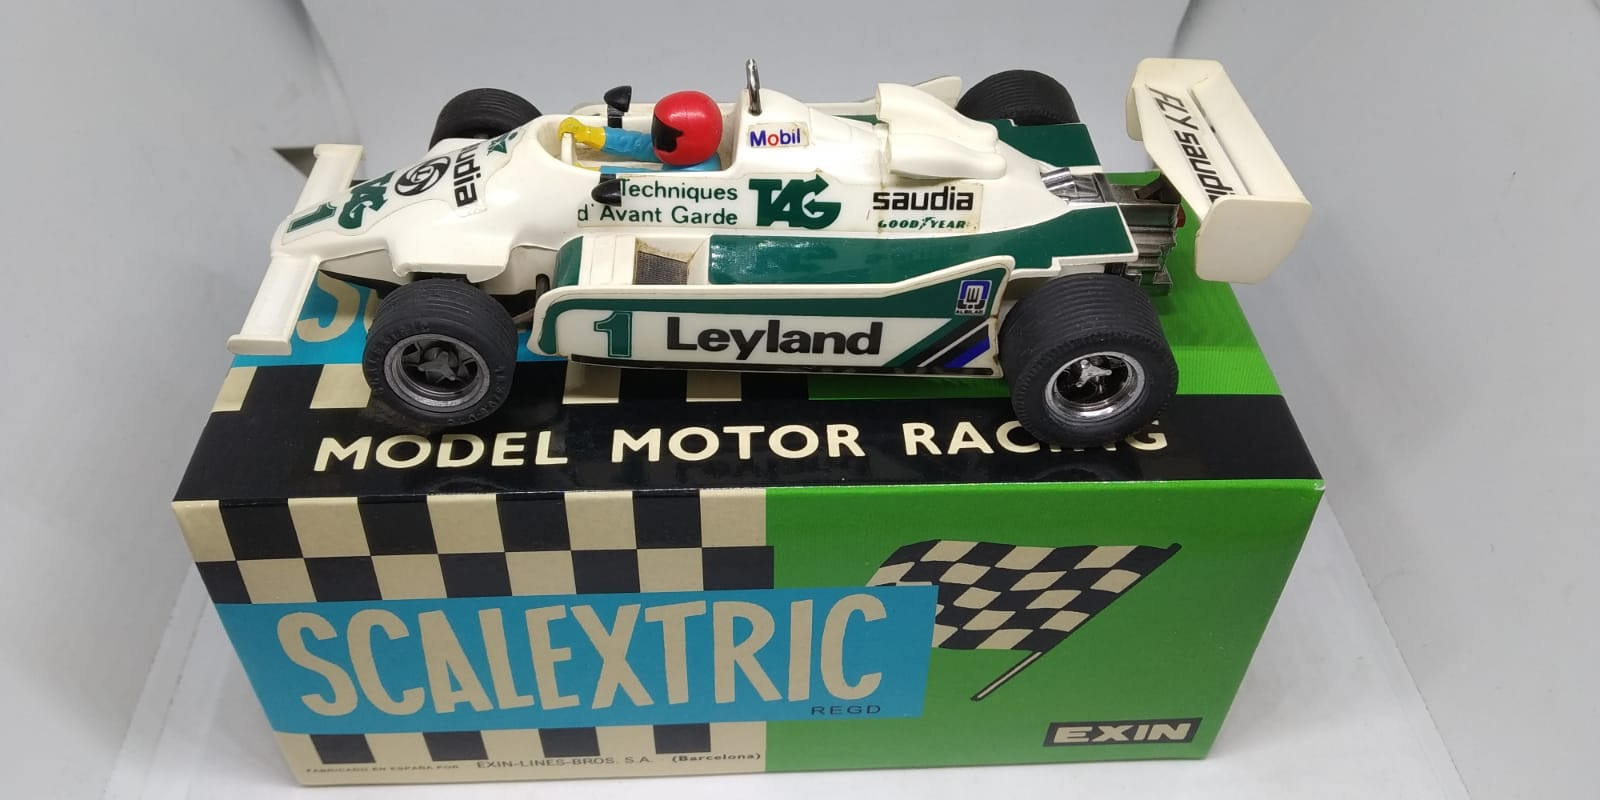 FW WILLIAMS 07, EXIN ,SCALEXTRIC